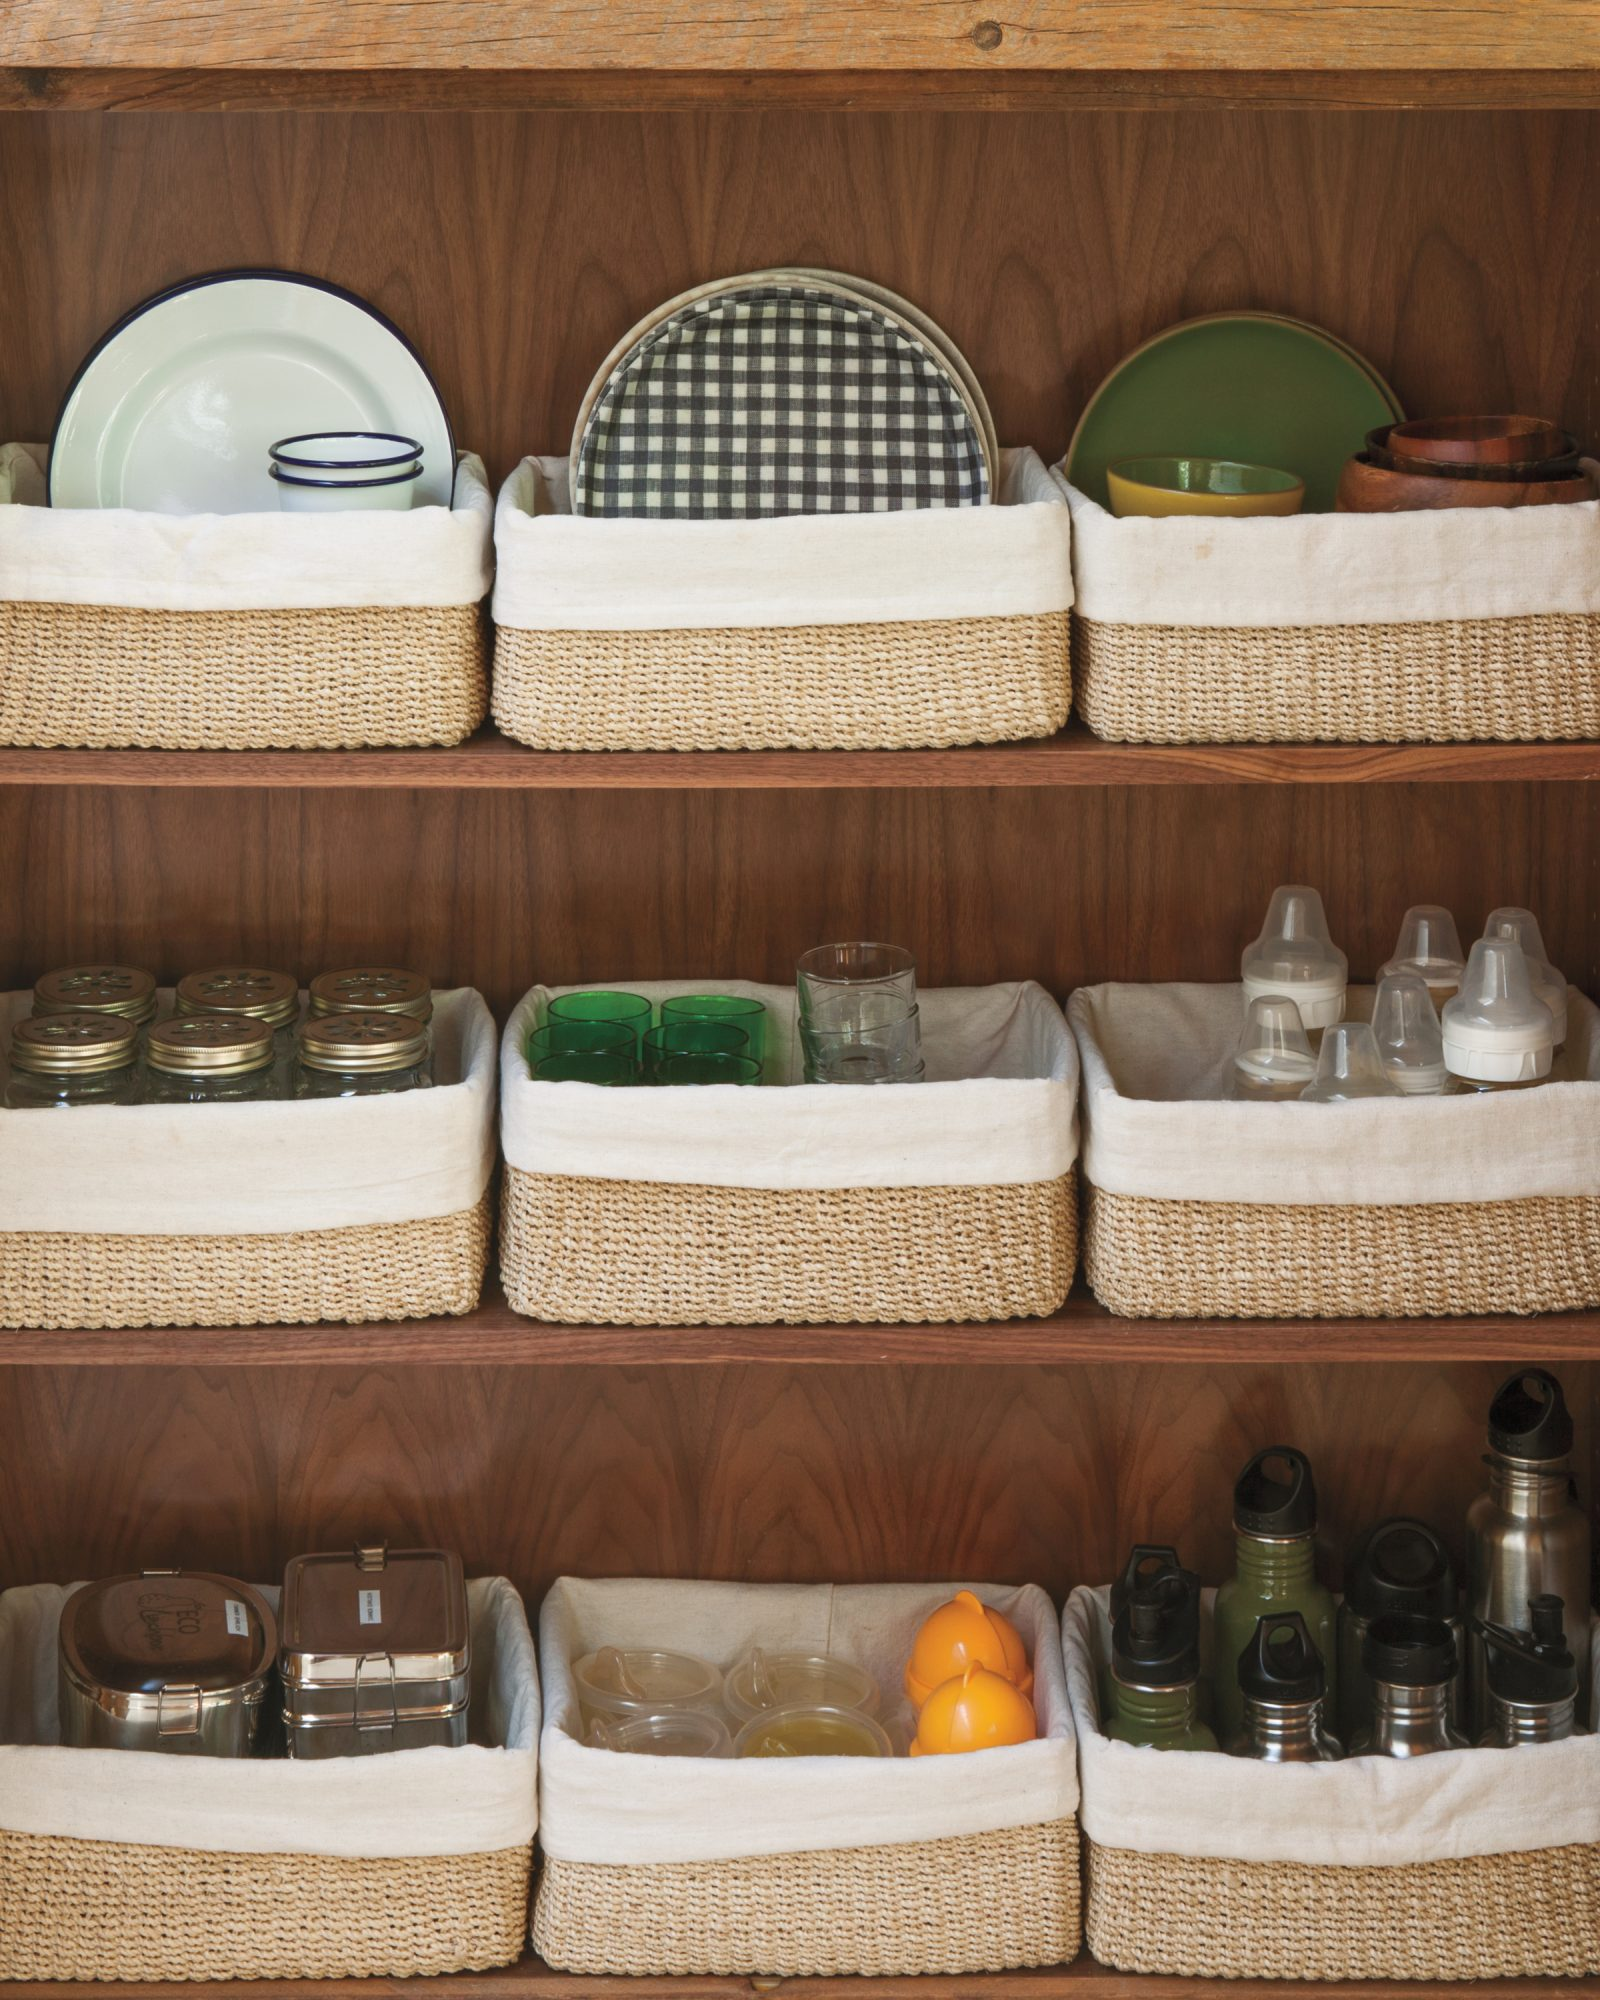 kitchen-cupboard-organization-011-mld109599.jpg